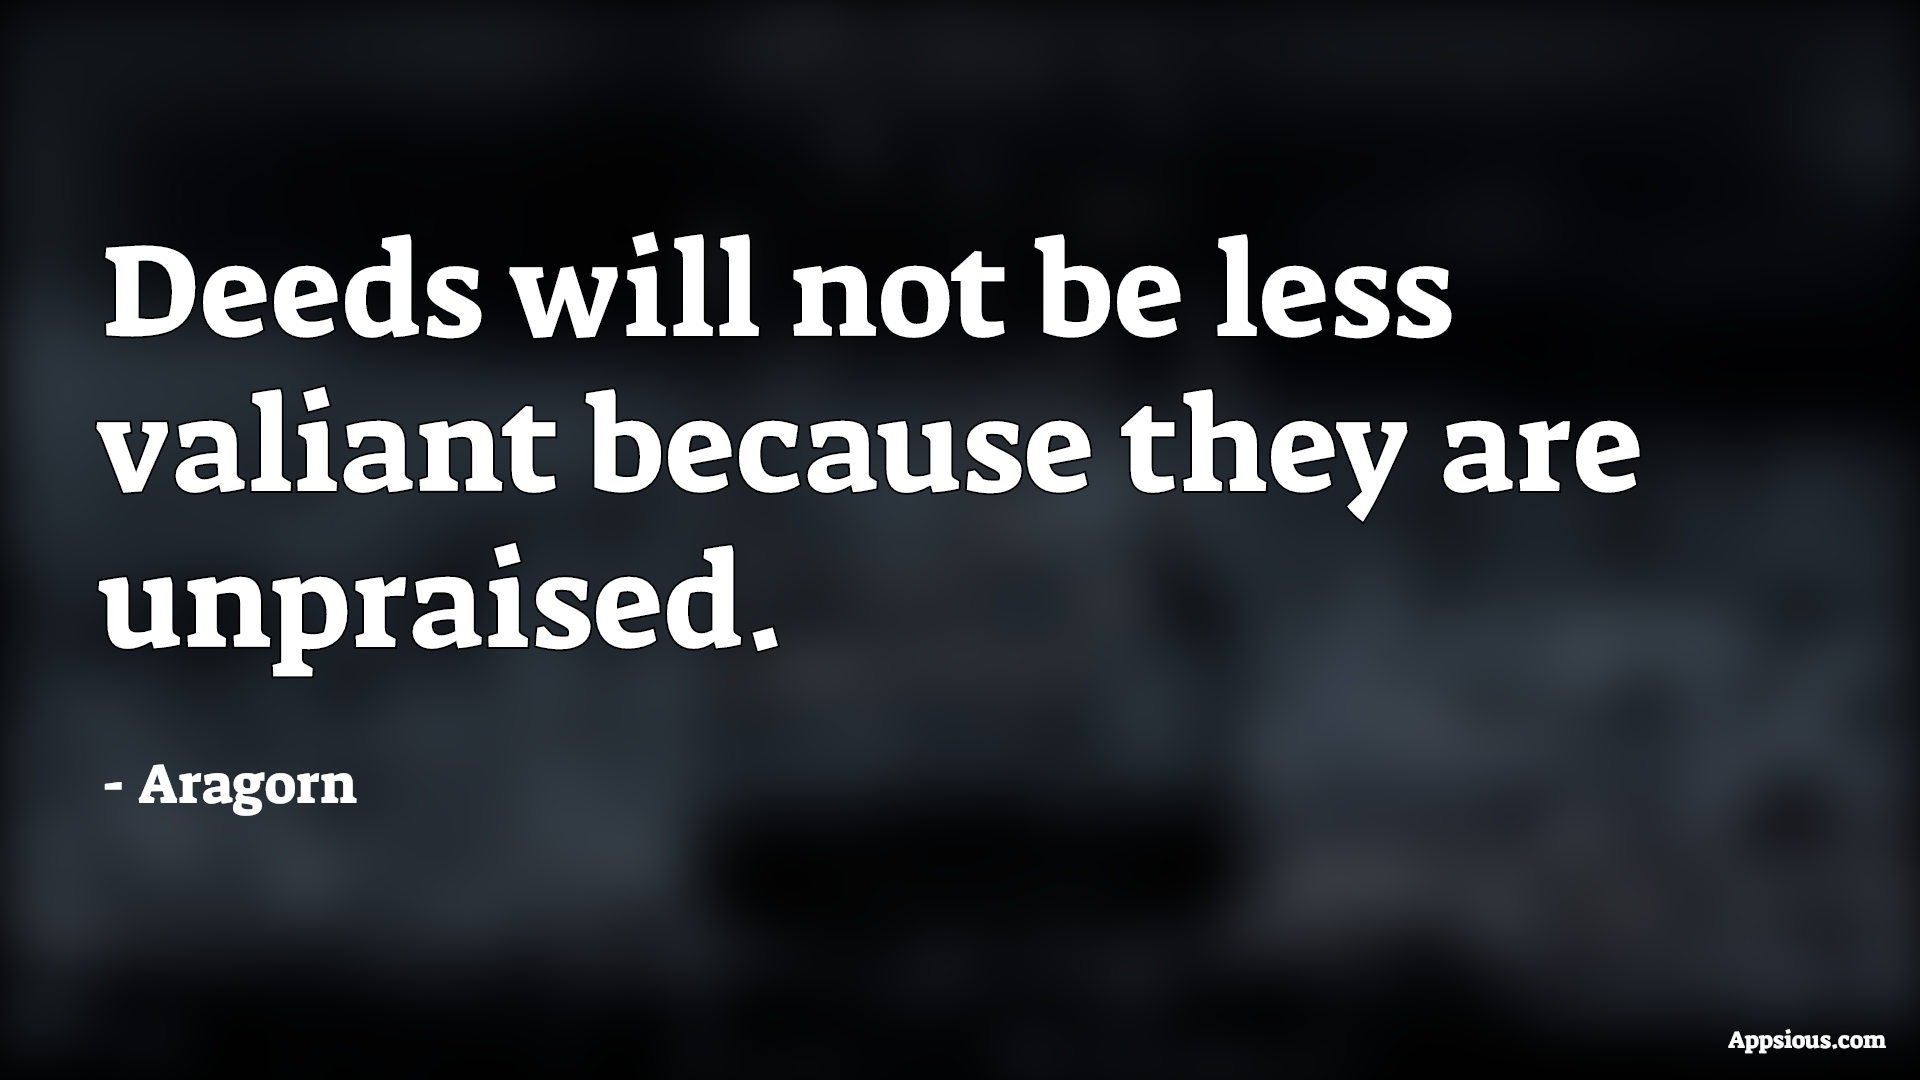 Deeds will not be less valiant because they are unpraised.